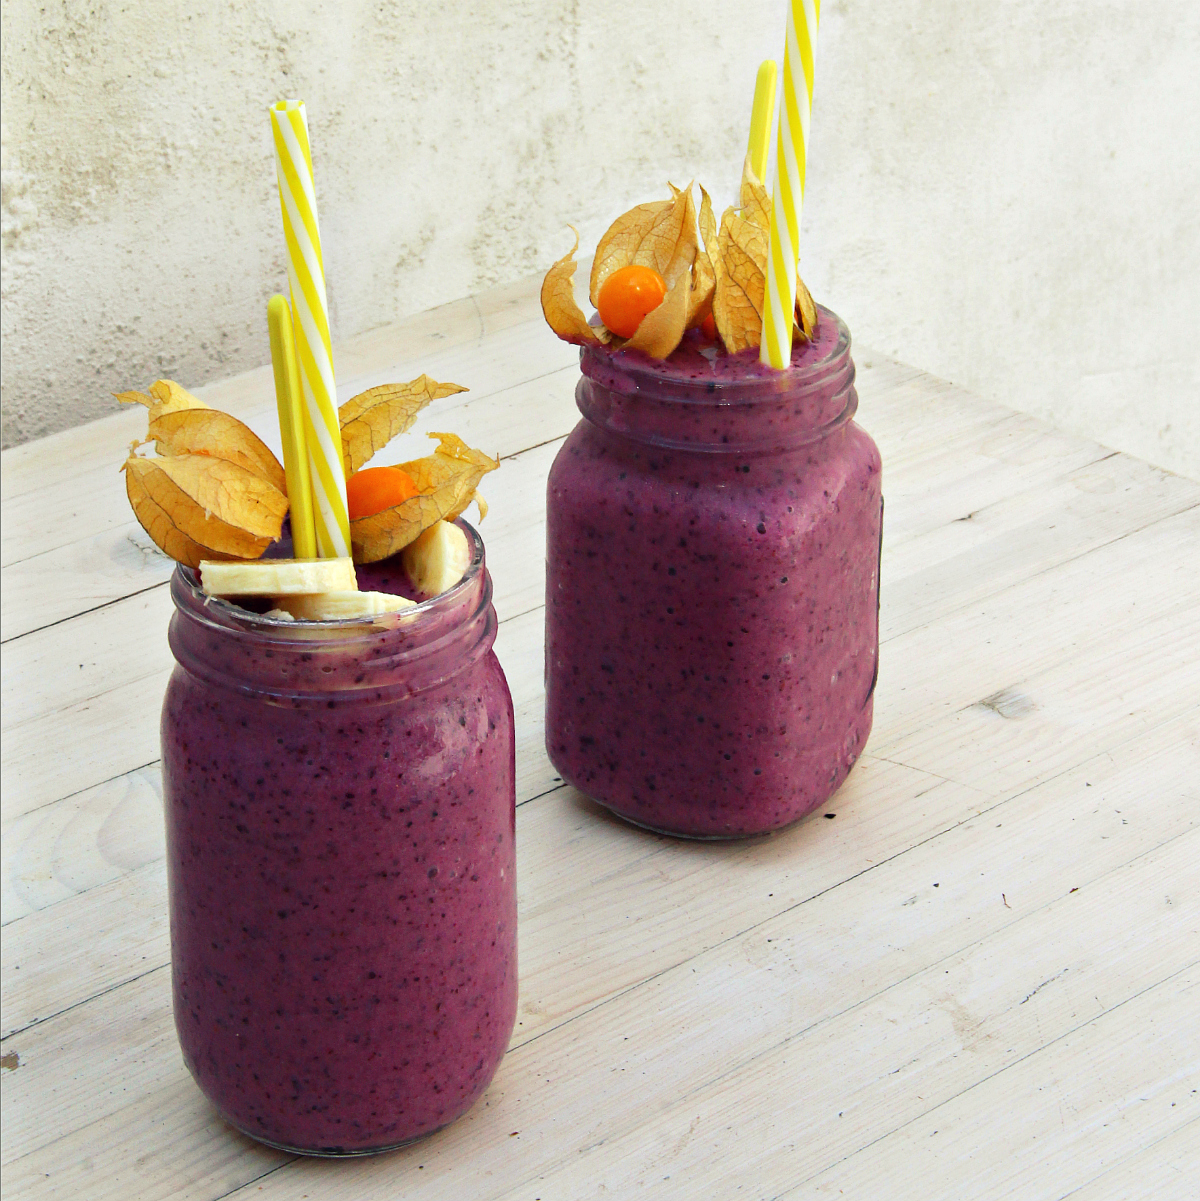 Violet Pineapple Blueberry Smoothie - The Vegan Eskimo